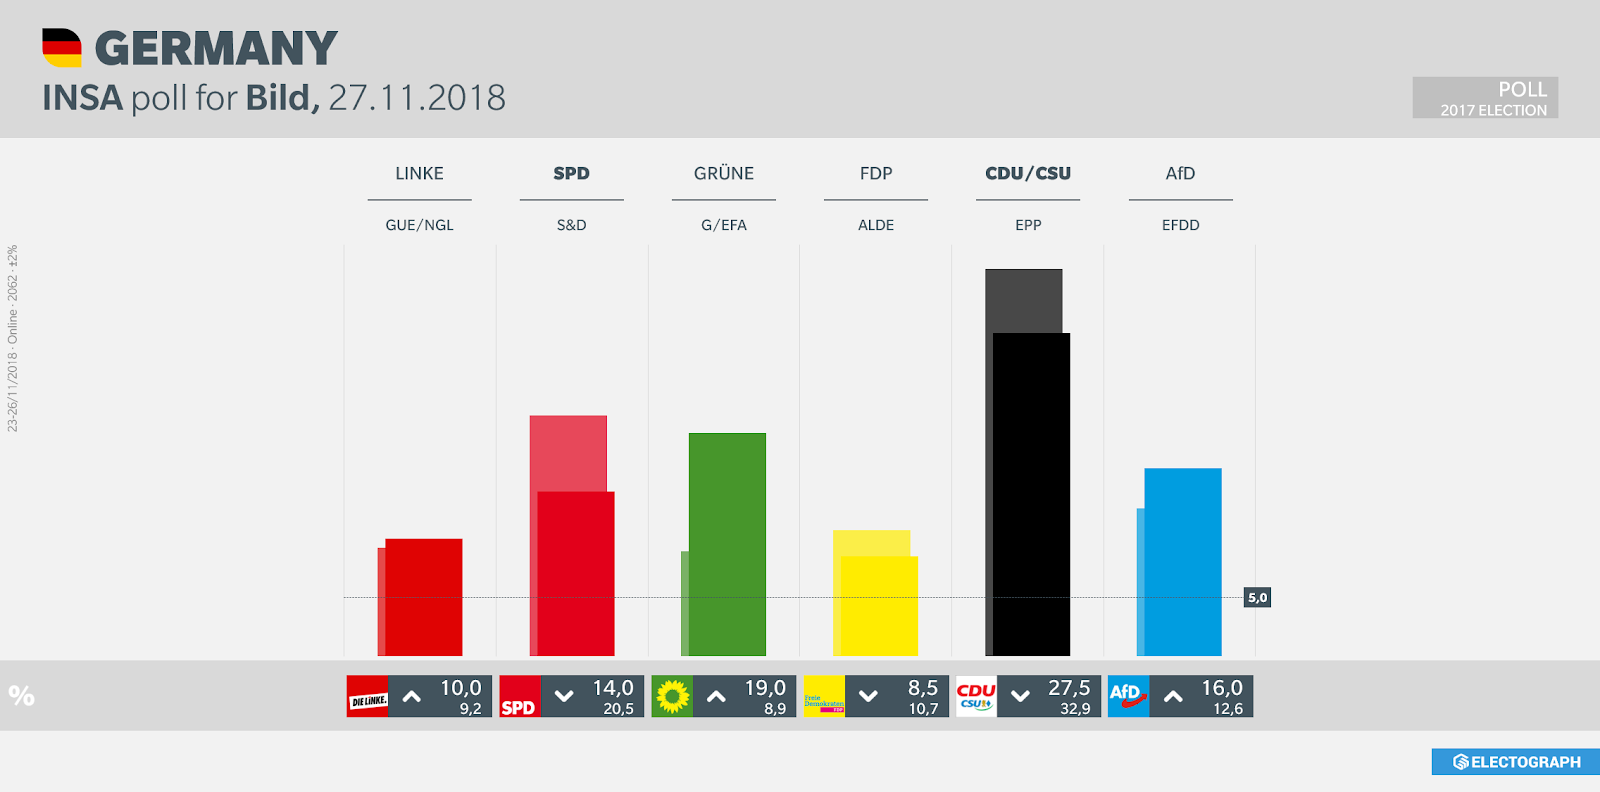 GERMANY: INSA poll chart for Bild, 27 November 2018